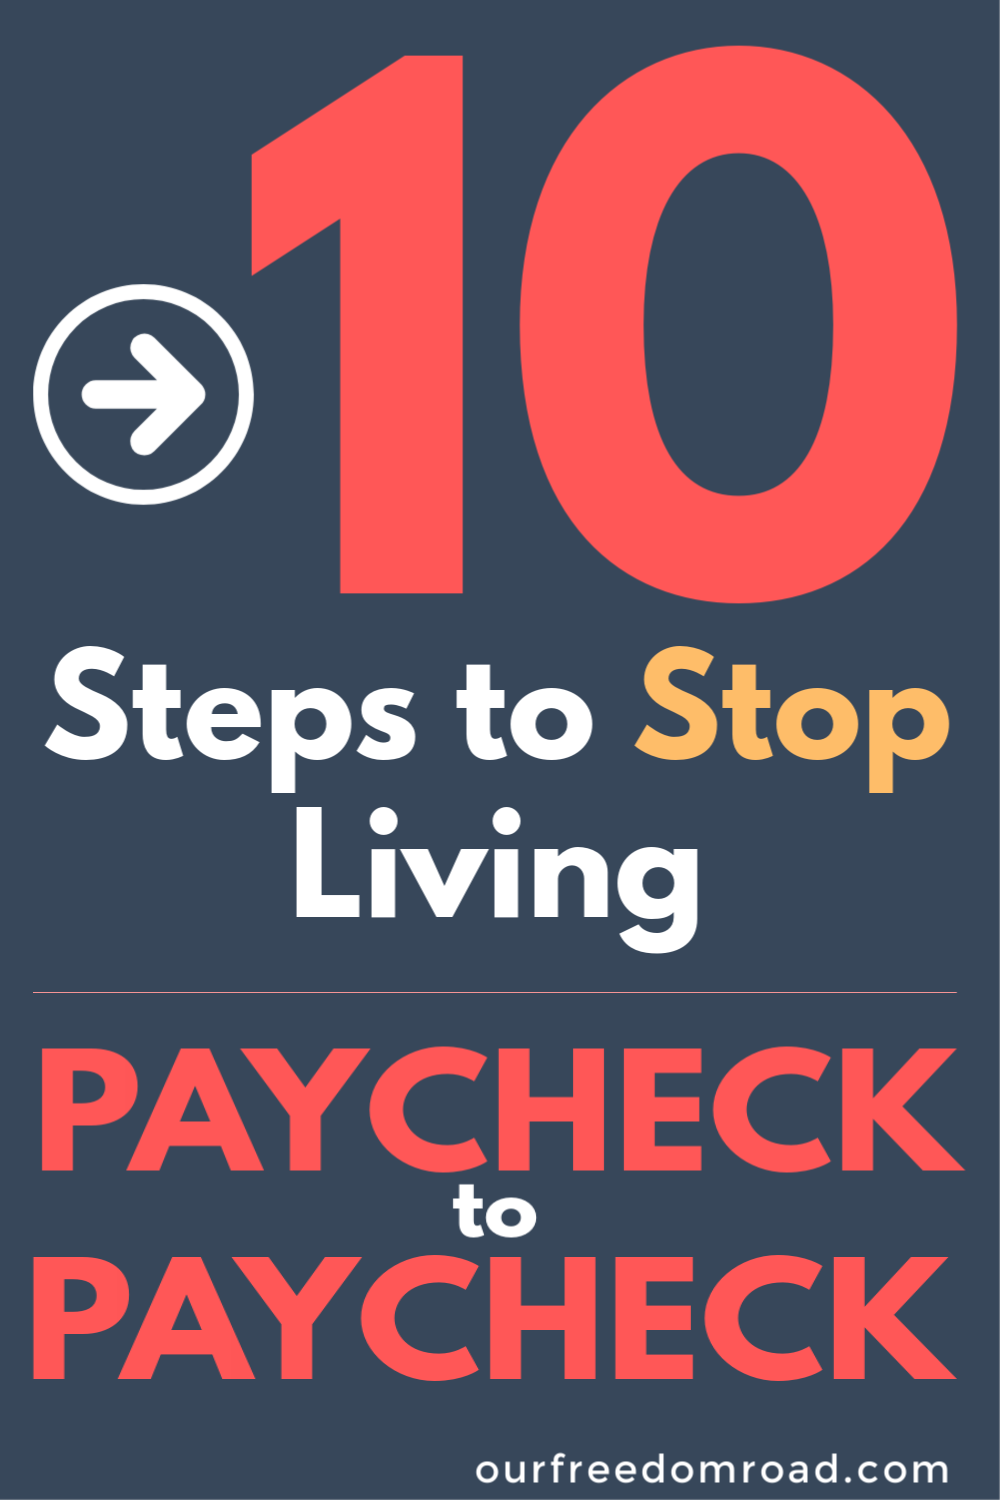 10 Steps to Stop Living Paycheck to Paycheck